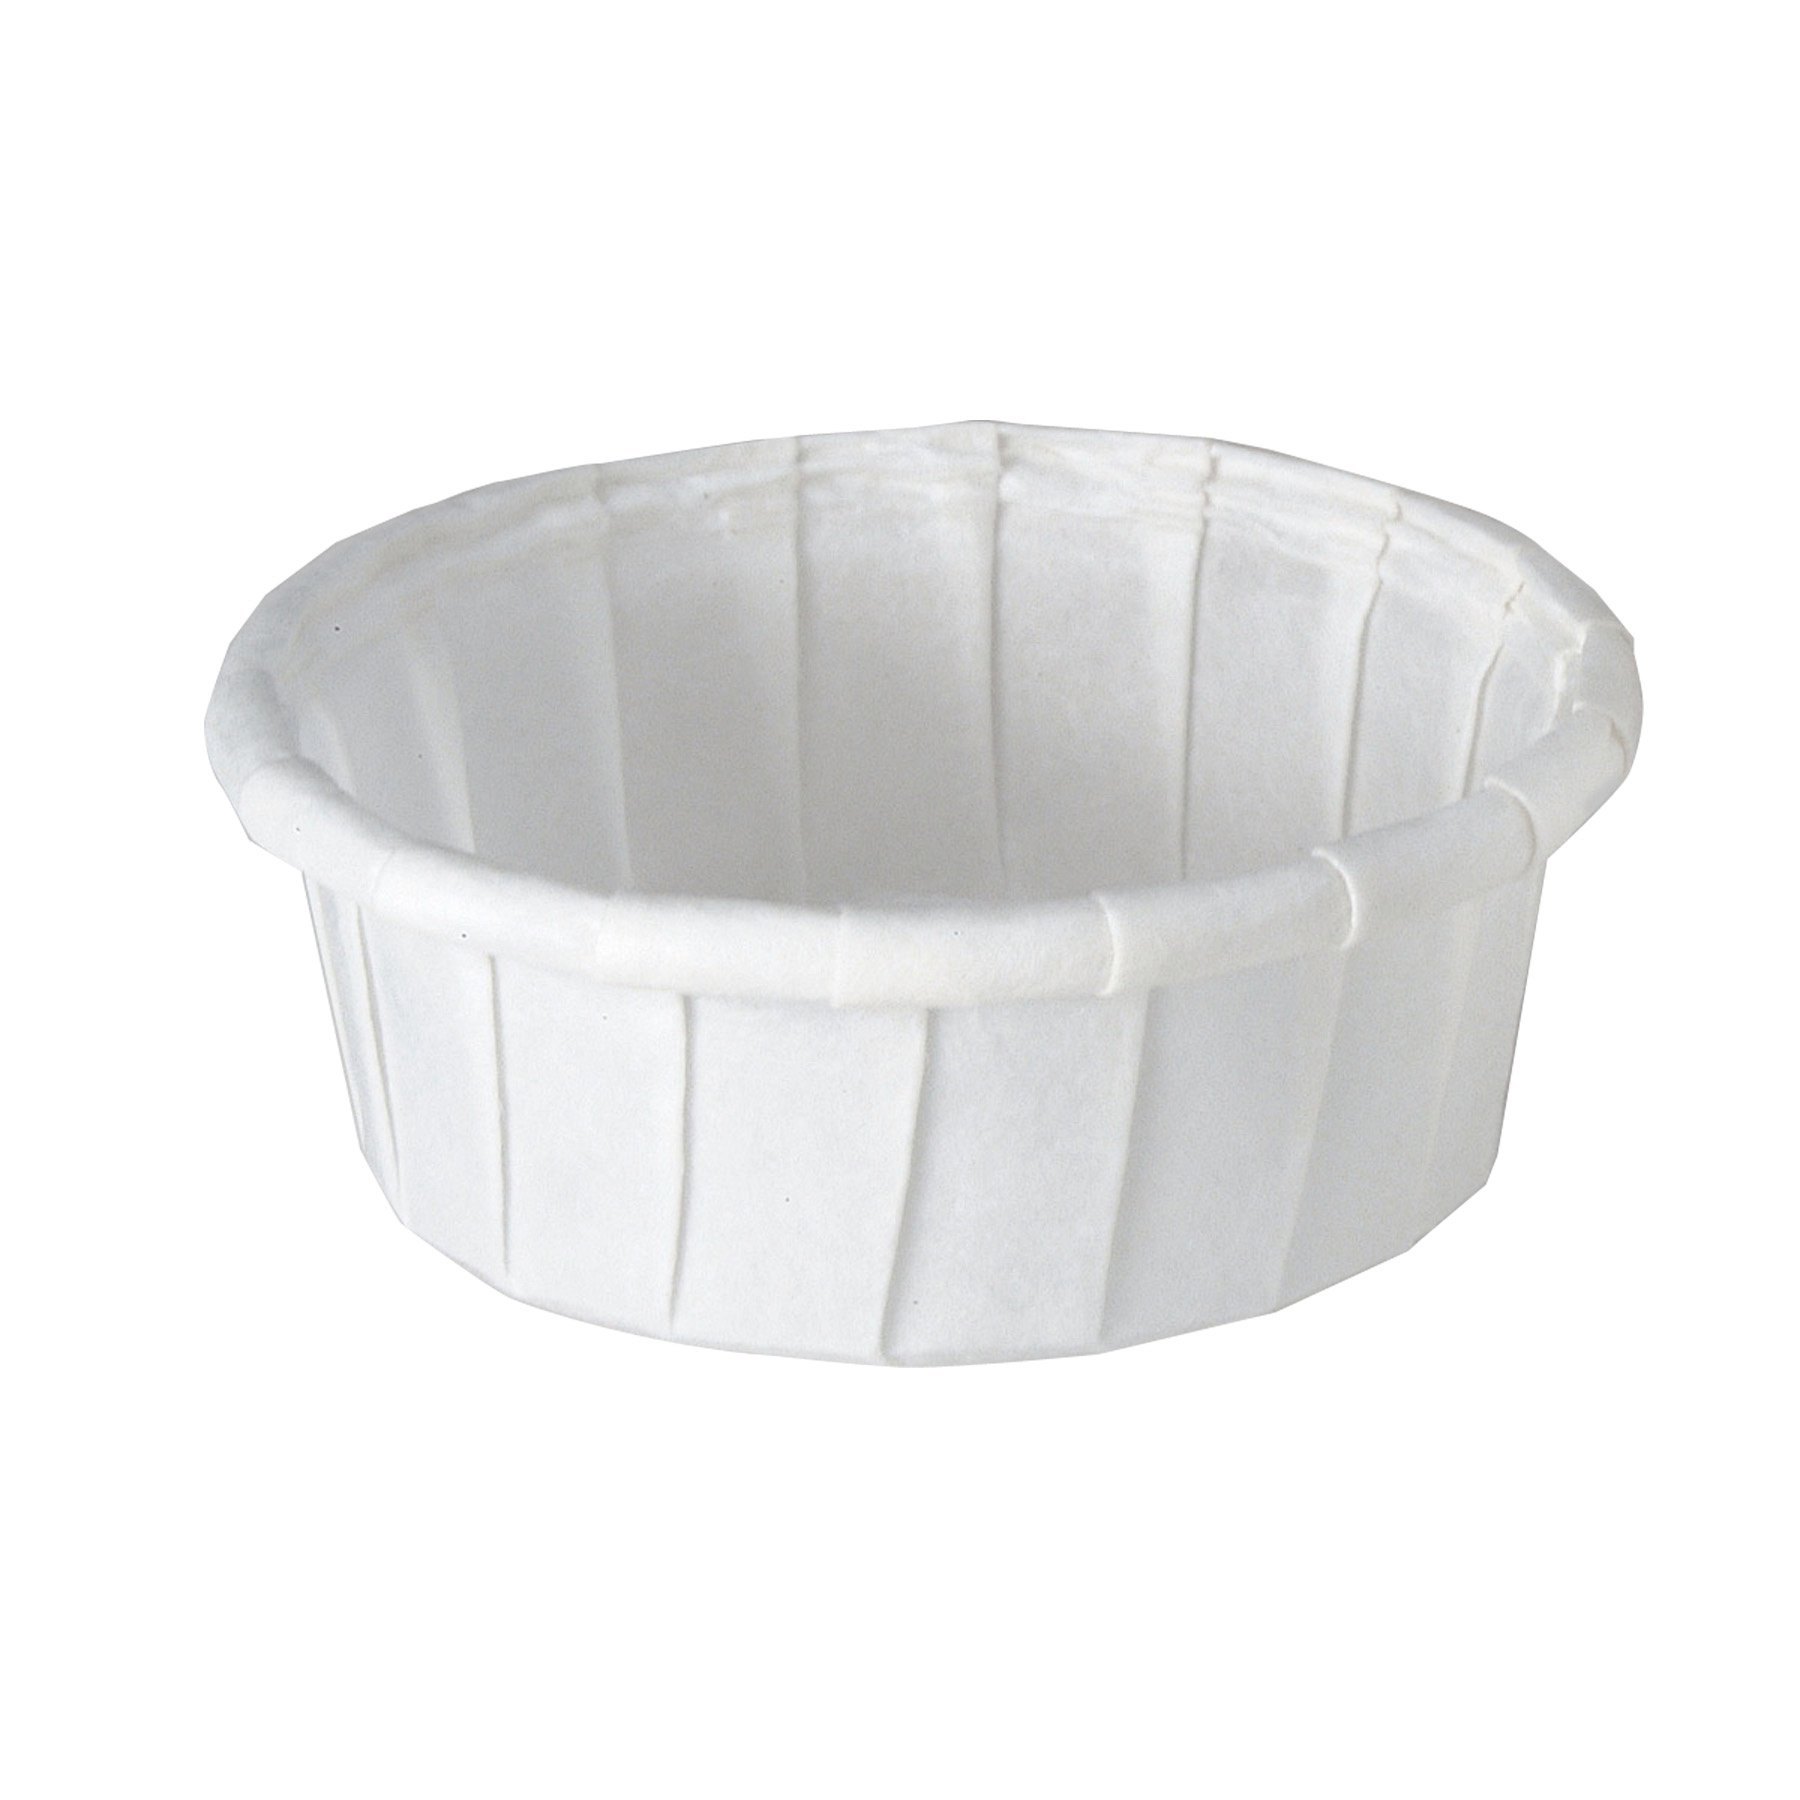 Solo 050S-X2050 0.5 oz Treated Paper Portion Cup (Case of 5000) by Solo Foodservice